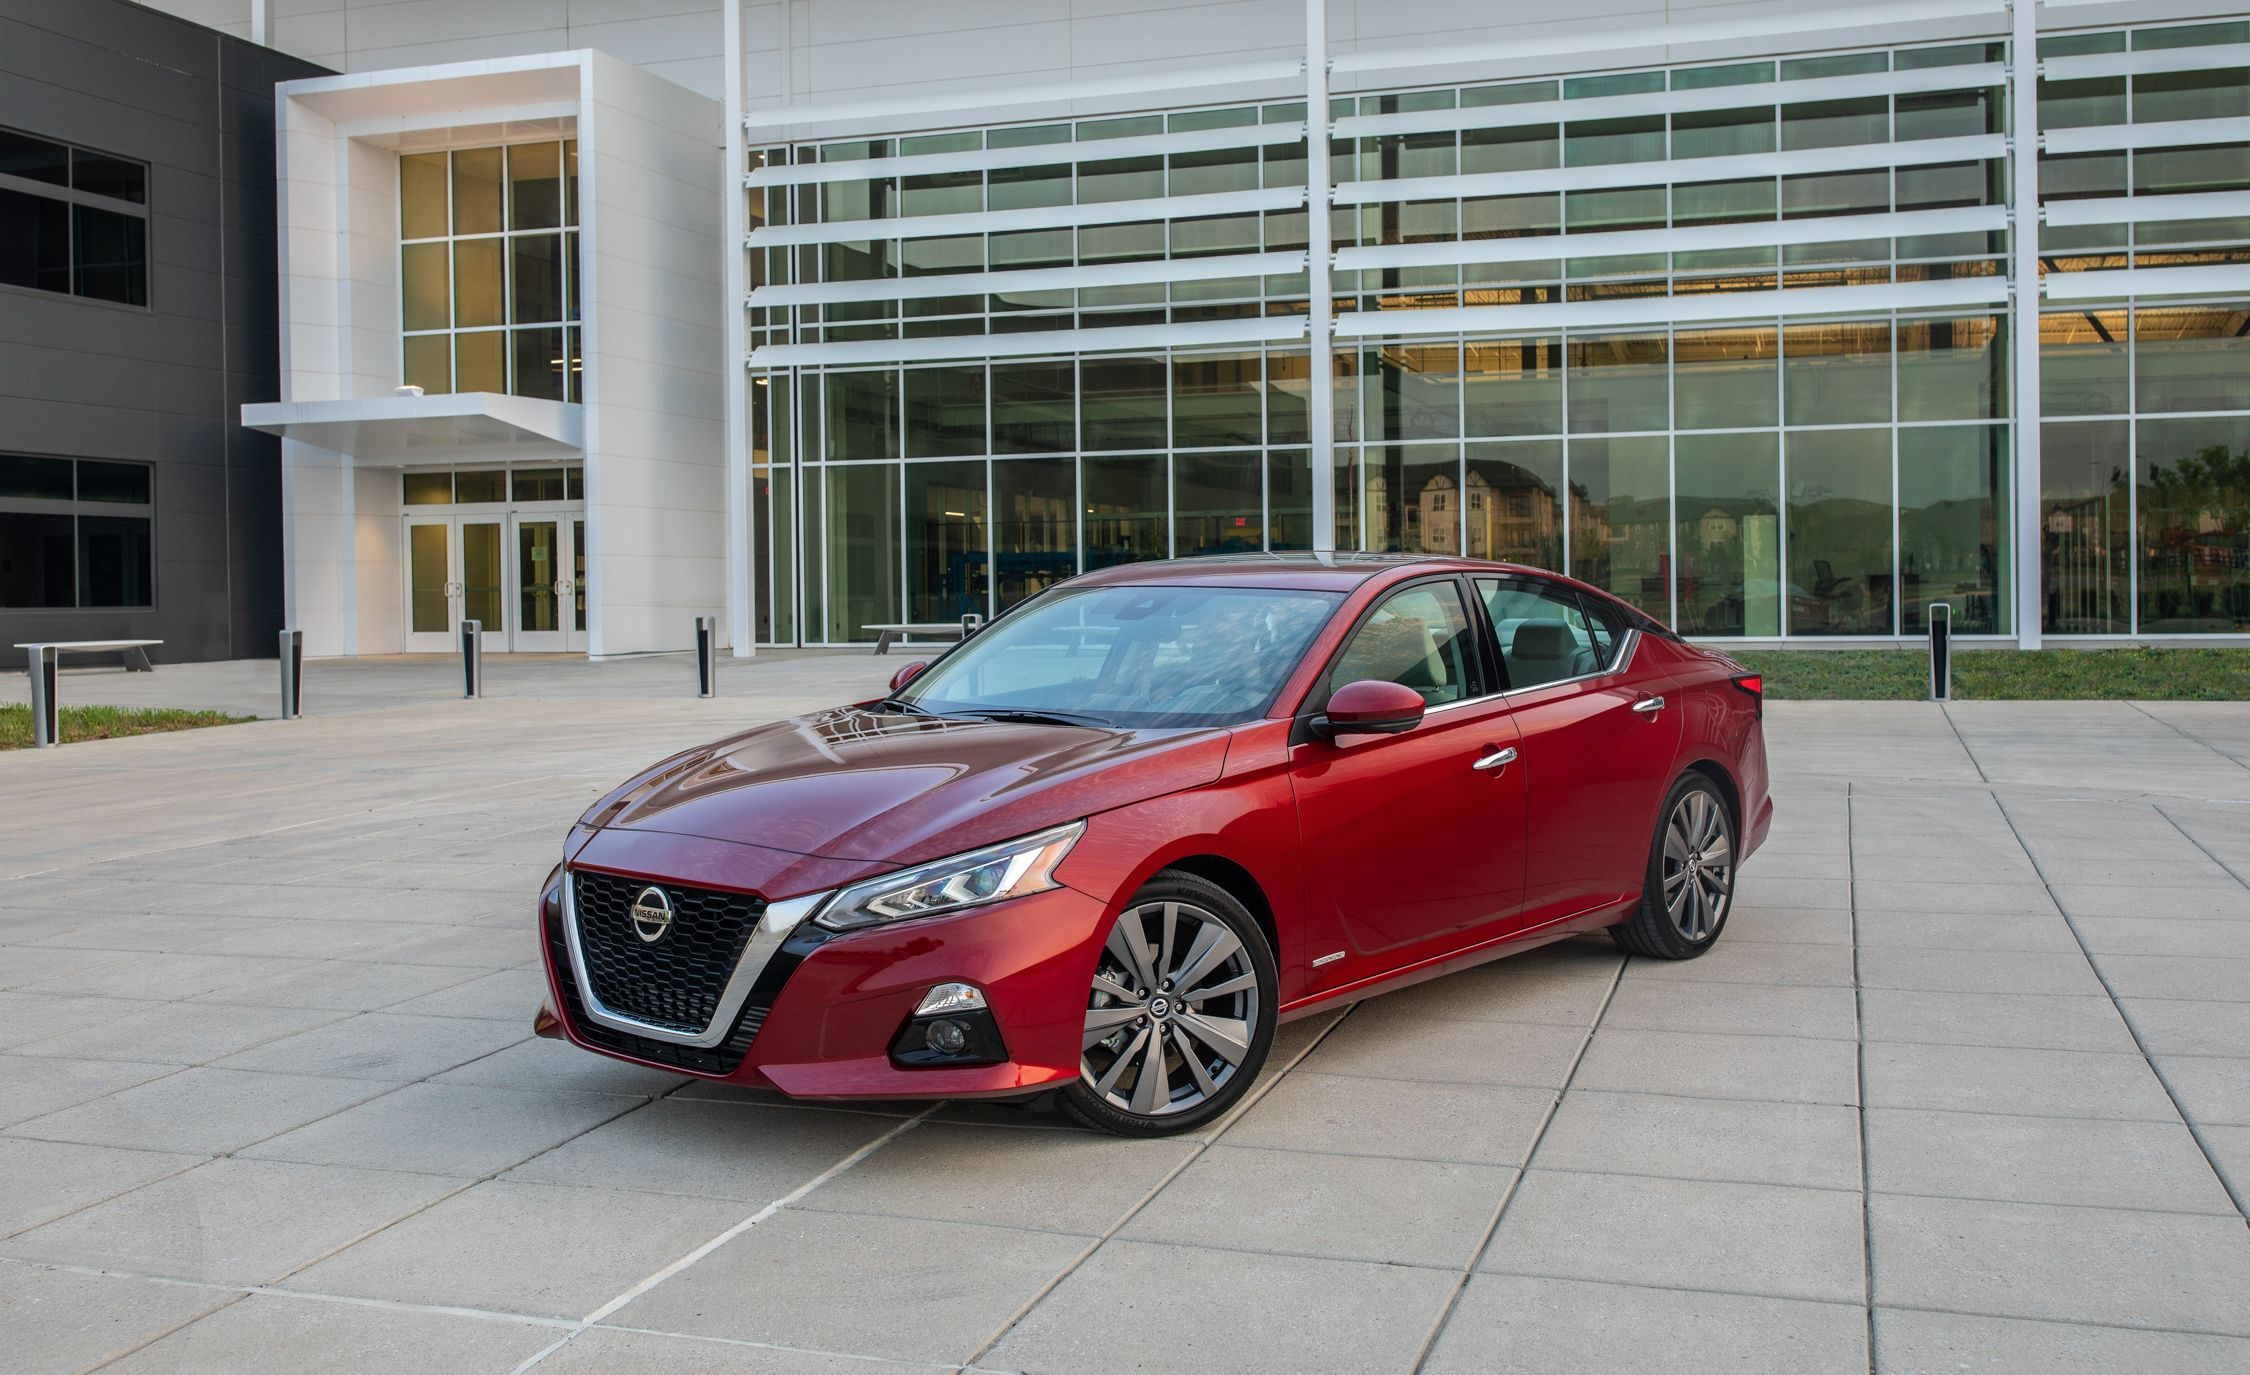 Nissan Drums Up Anticipation for 2019 Altima with Special Edition One Model